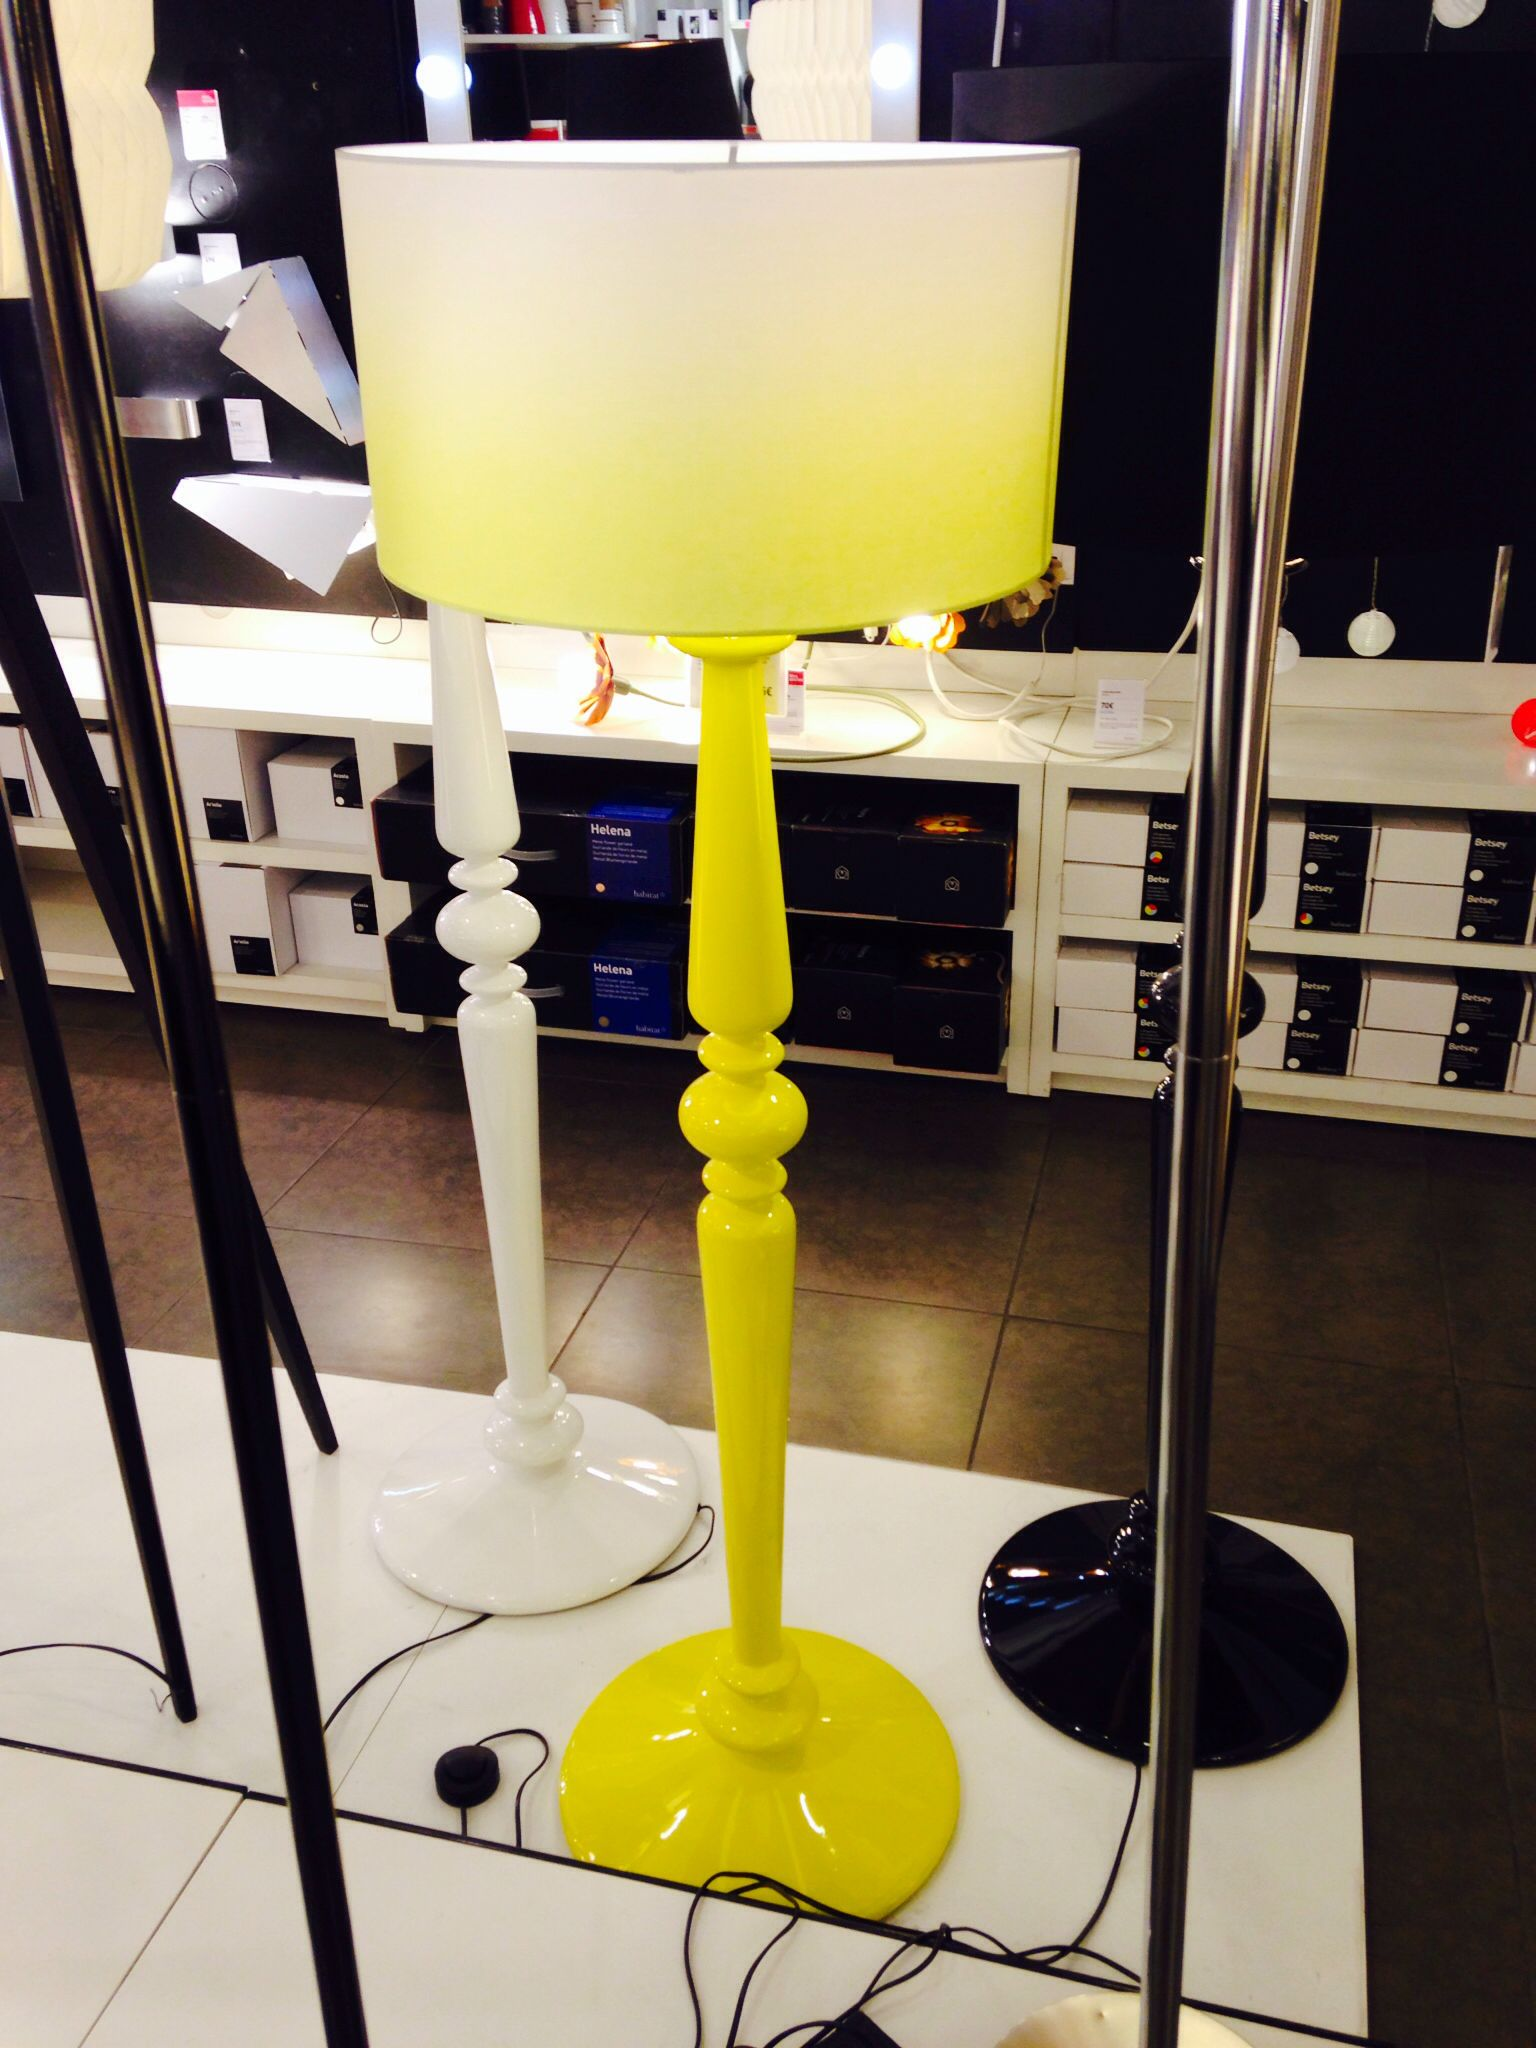 Spindle Lamp Base Degraday Lamp Shade From Habitat Love This